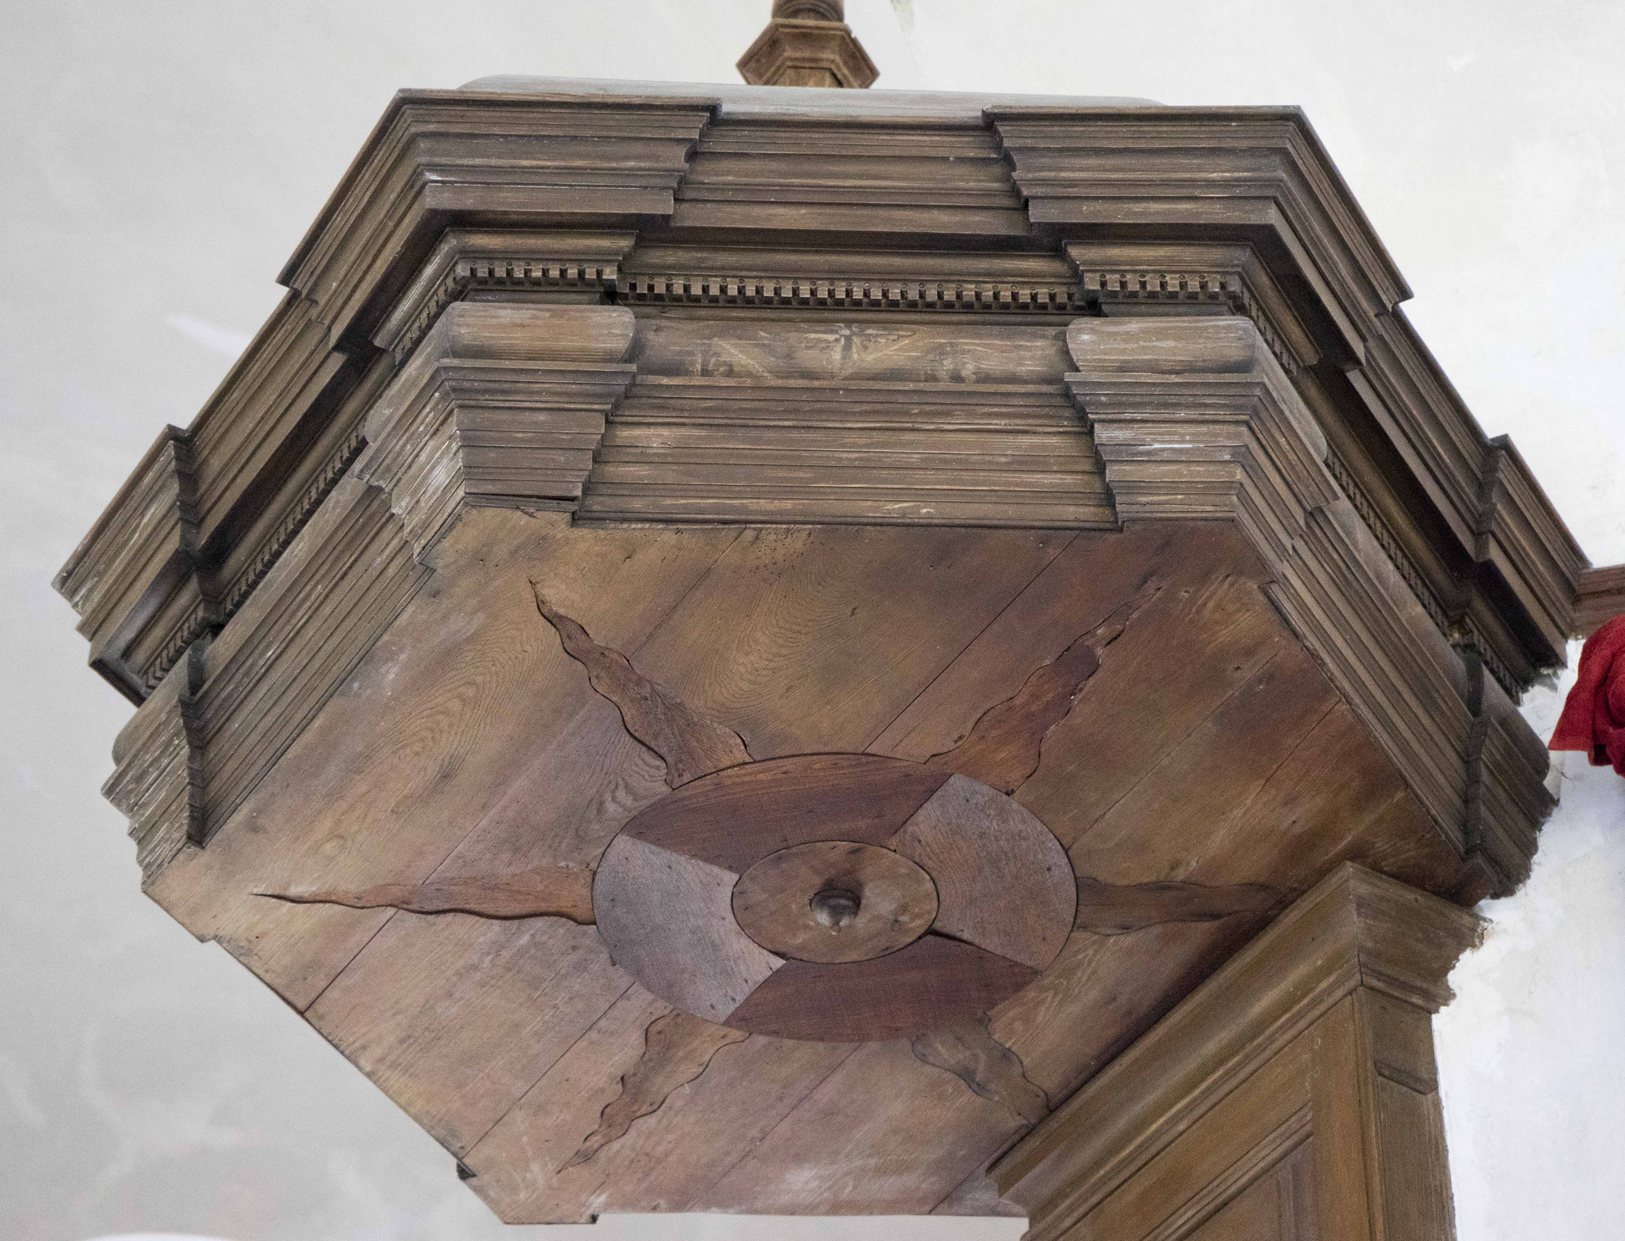 The Christ Church sounding board in Lancaster County, Virginia dates to c. 1735. Note that there is no face in the center of the starburst.